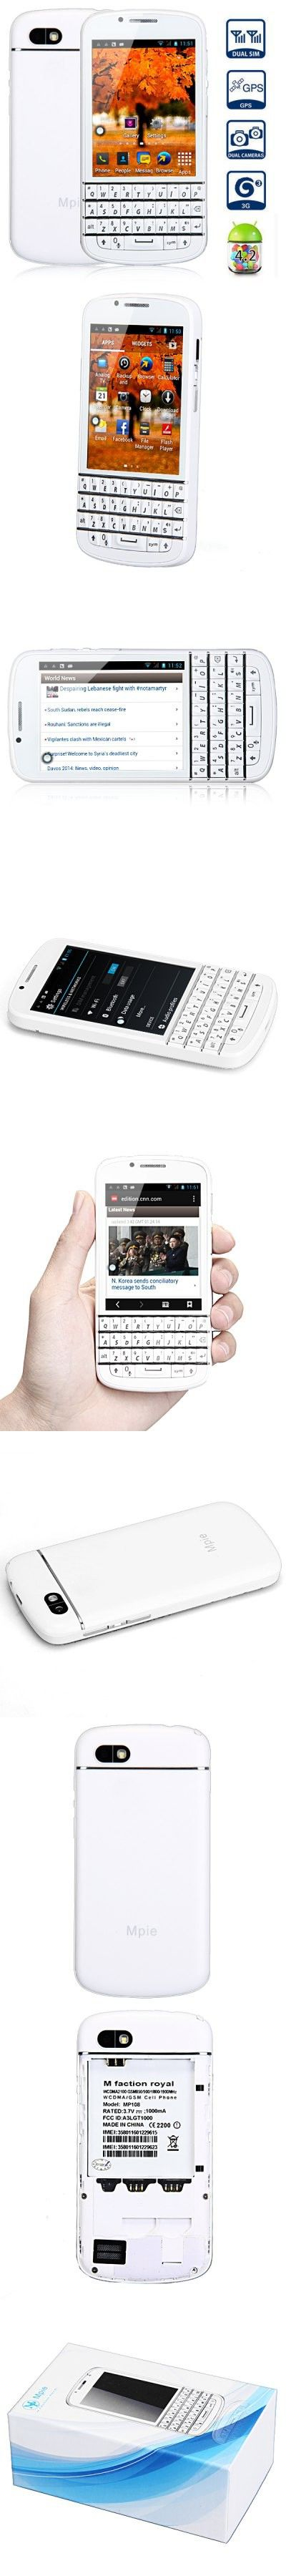 Mpie MP108 Android 4.2 3G Qwerty Keyboard Smartphone with 3.2 inch Screen MTK6572 Dual Core 4GB ROM GPS Bluetooth Dual Cameras